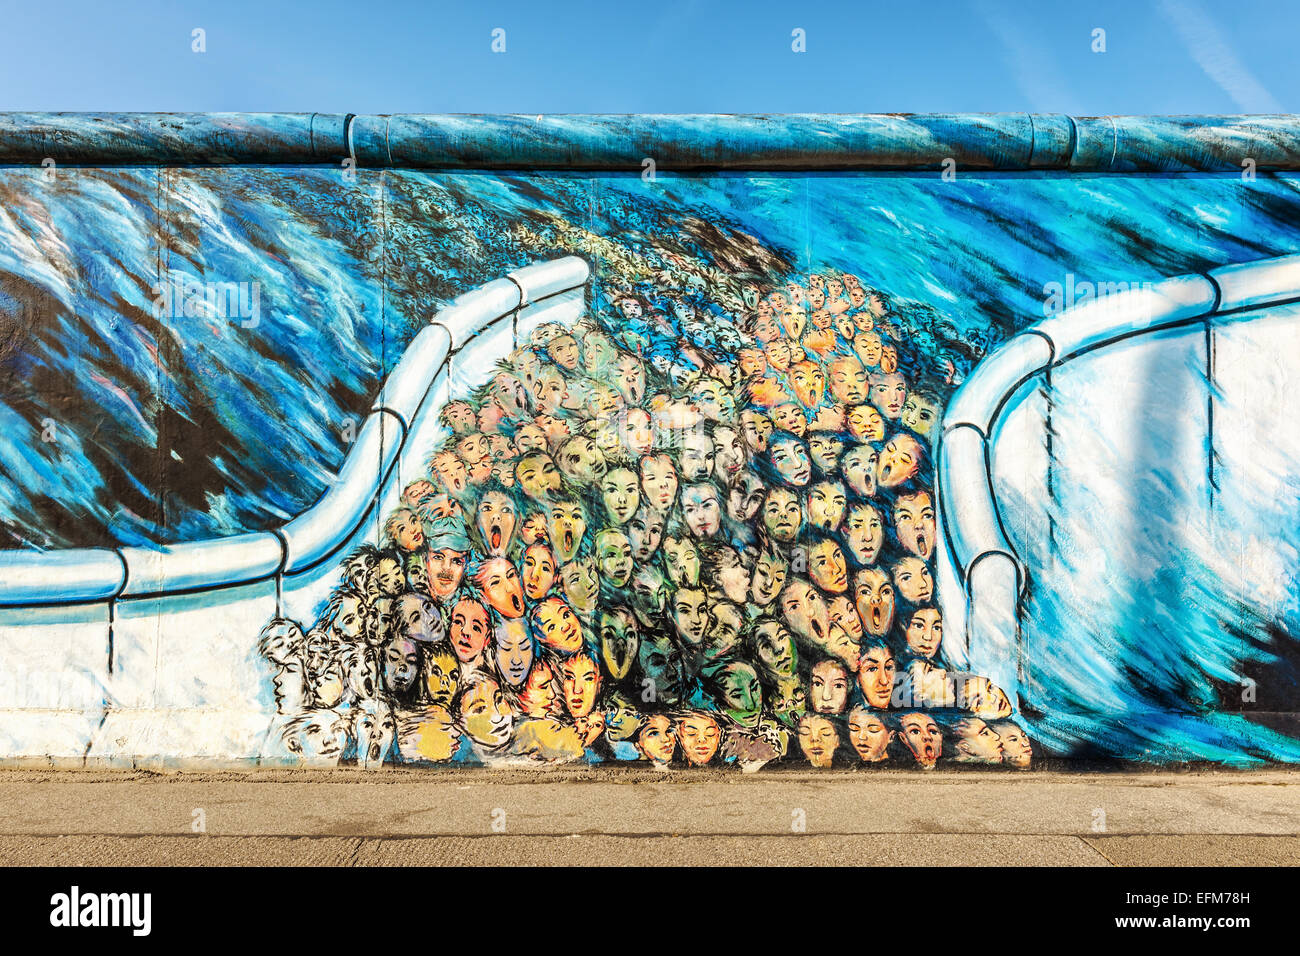 graffiti art depicting people escaping east berlin on berlin wall at stock photo 78506081 alamy. Black Bedroom Furniture Sets. Home Design Ideas